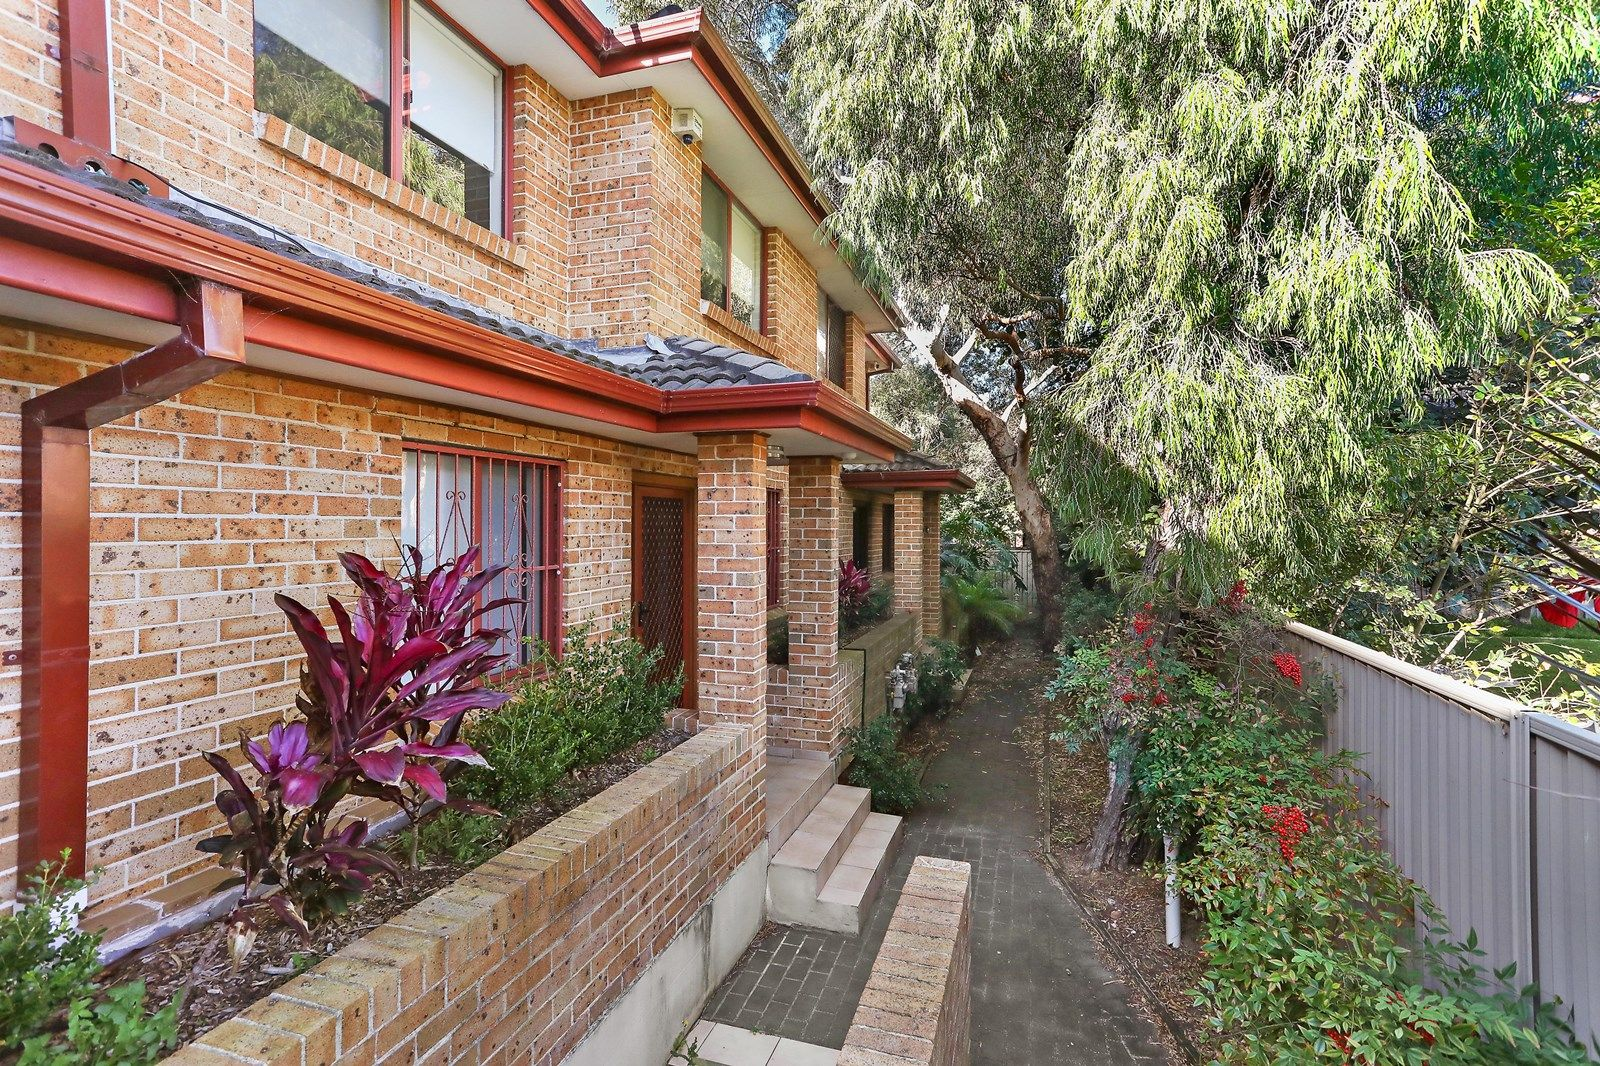 3/69 New Orleans Crescent, Maroubra NSW 2035, Image 2